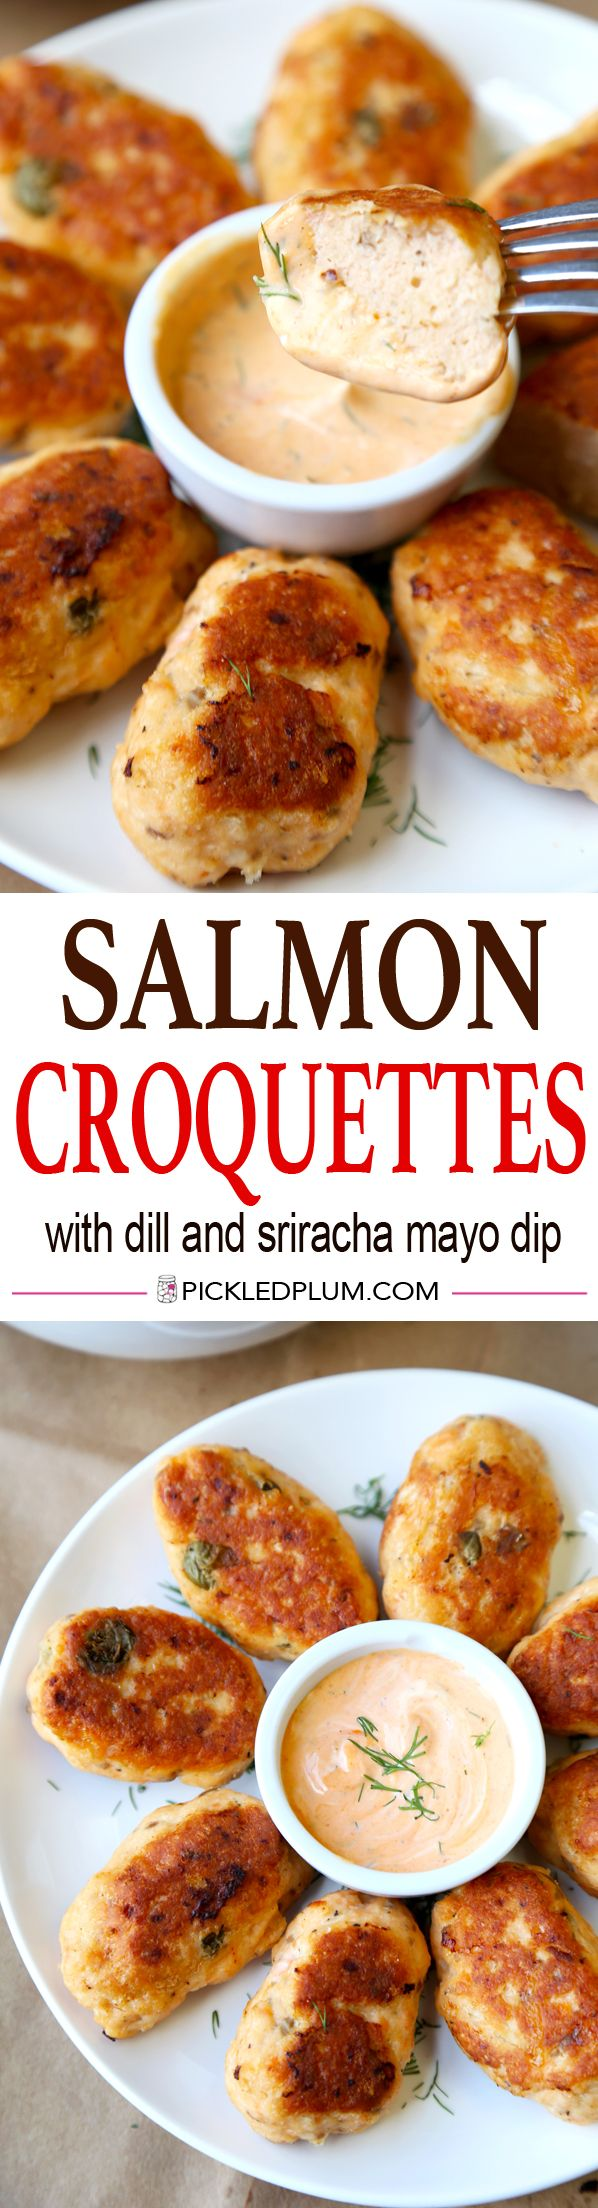 Healthy Salmon Croquettes Recipe with Dill and Sriracha Mayo Dipping Sauce. Only 10 minutes to prep! http://www.pickledplum.com/salmon-croquettes-recipe/